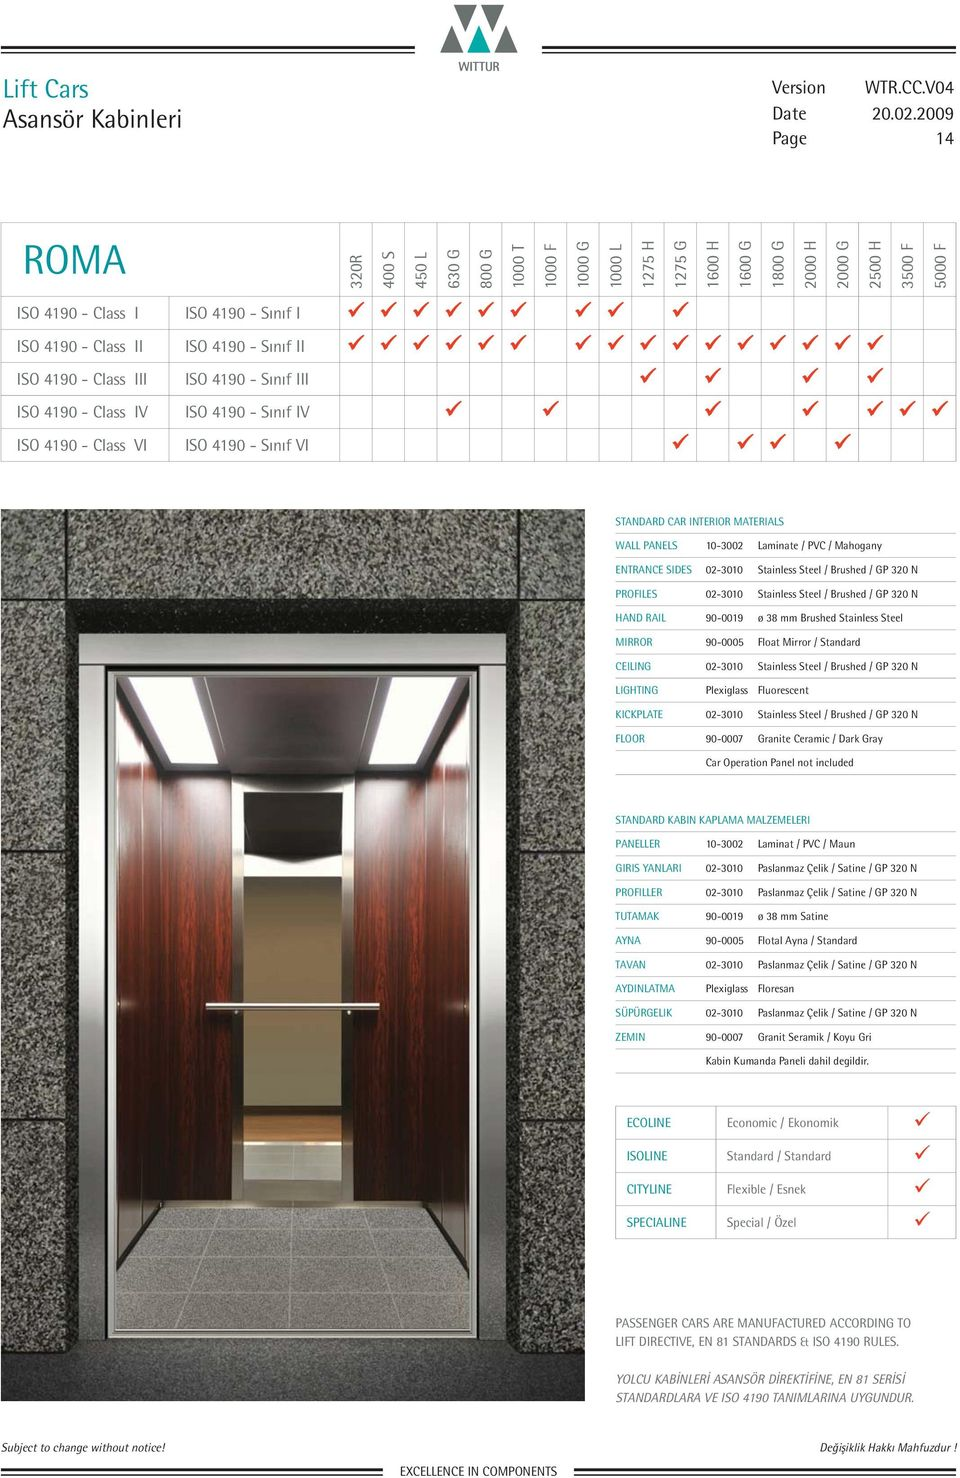 Sınıf VI WALL PANELS 10-3002 Laminate / PVC / Mahogany FLOOR 90-0007 Granite